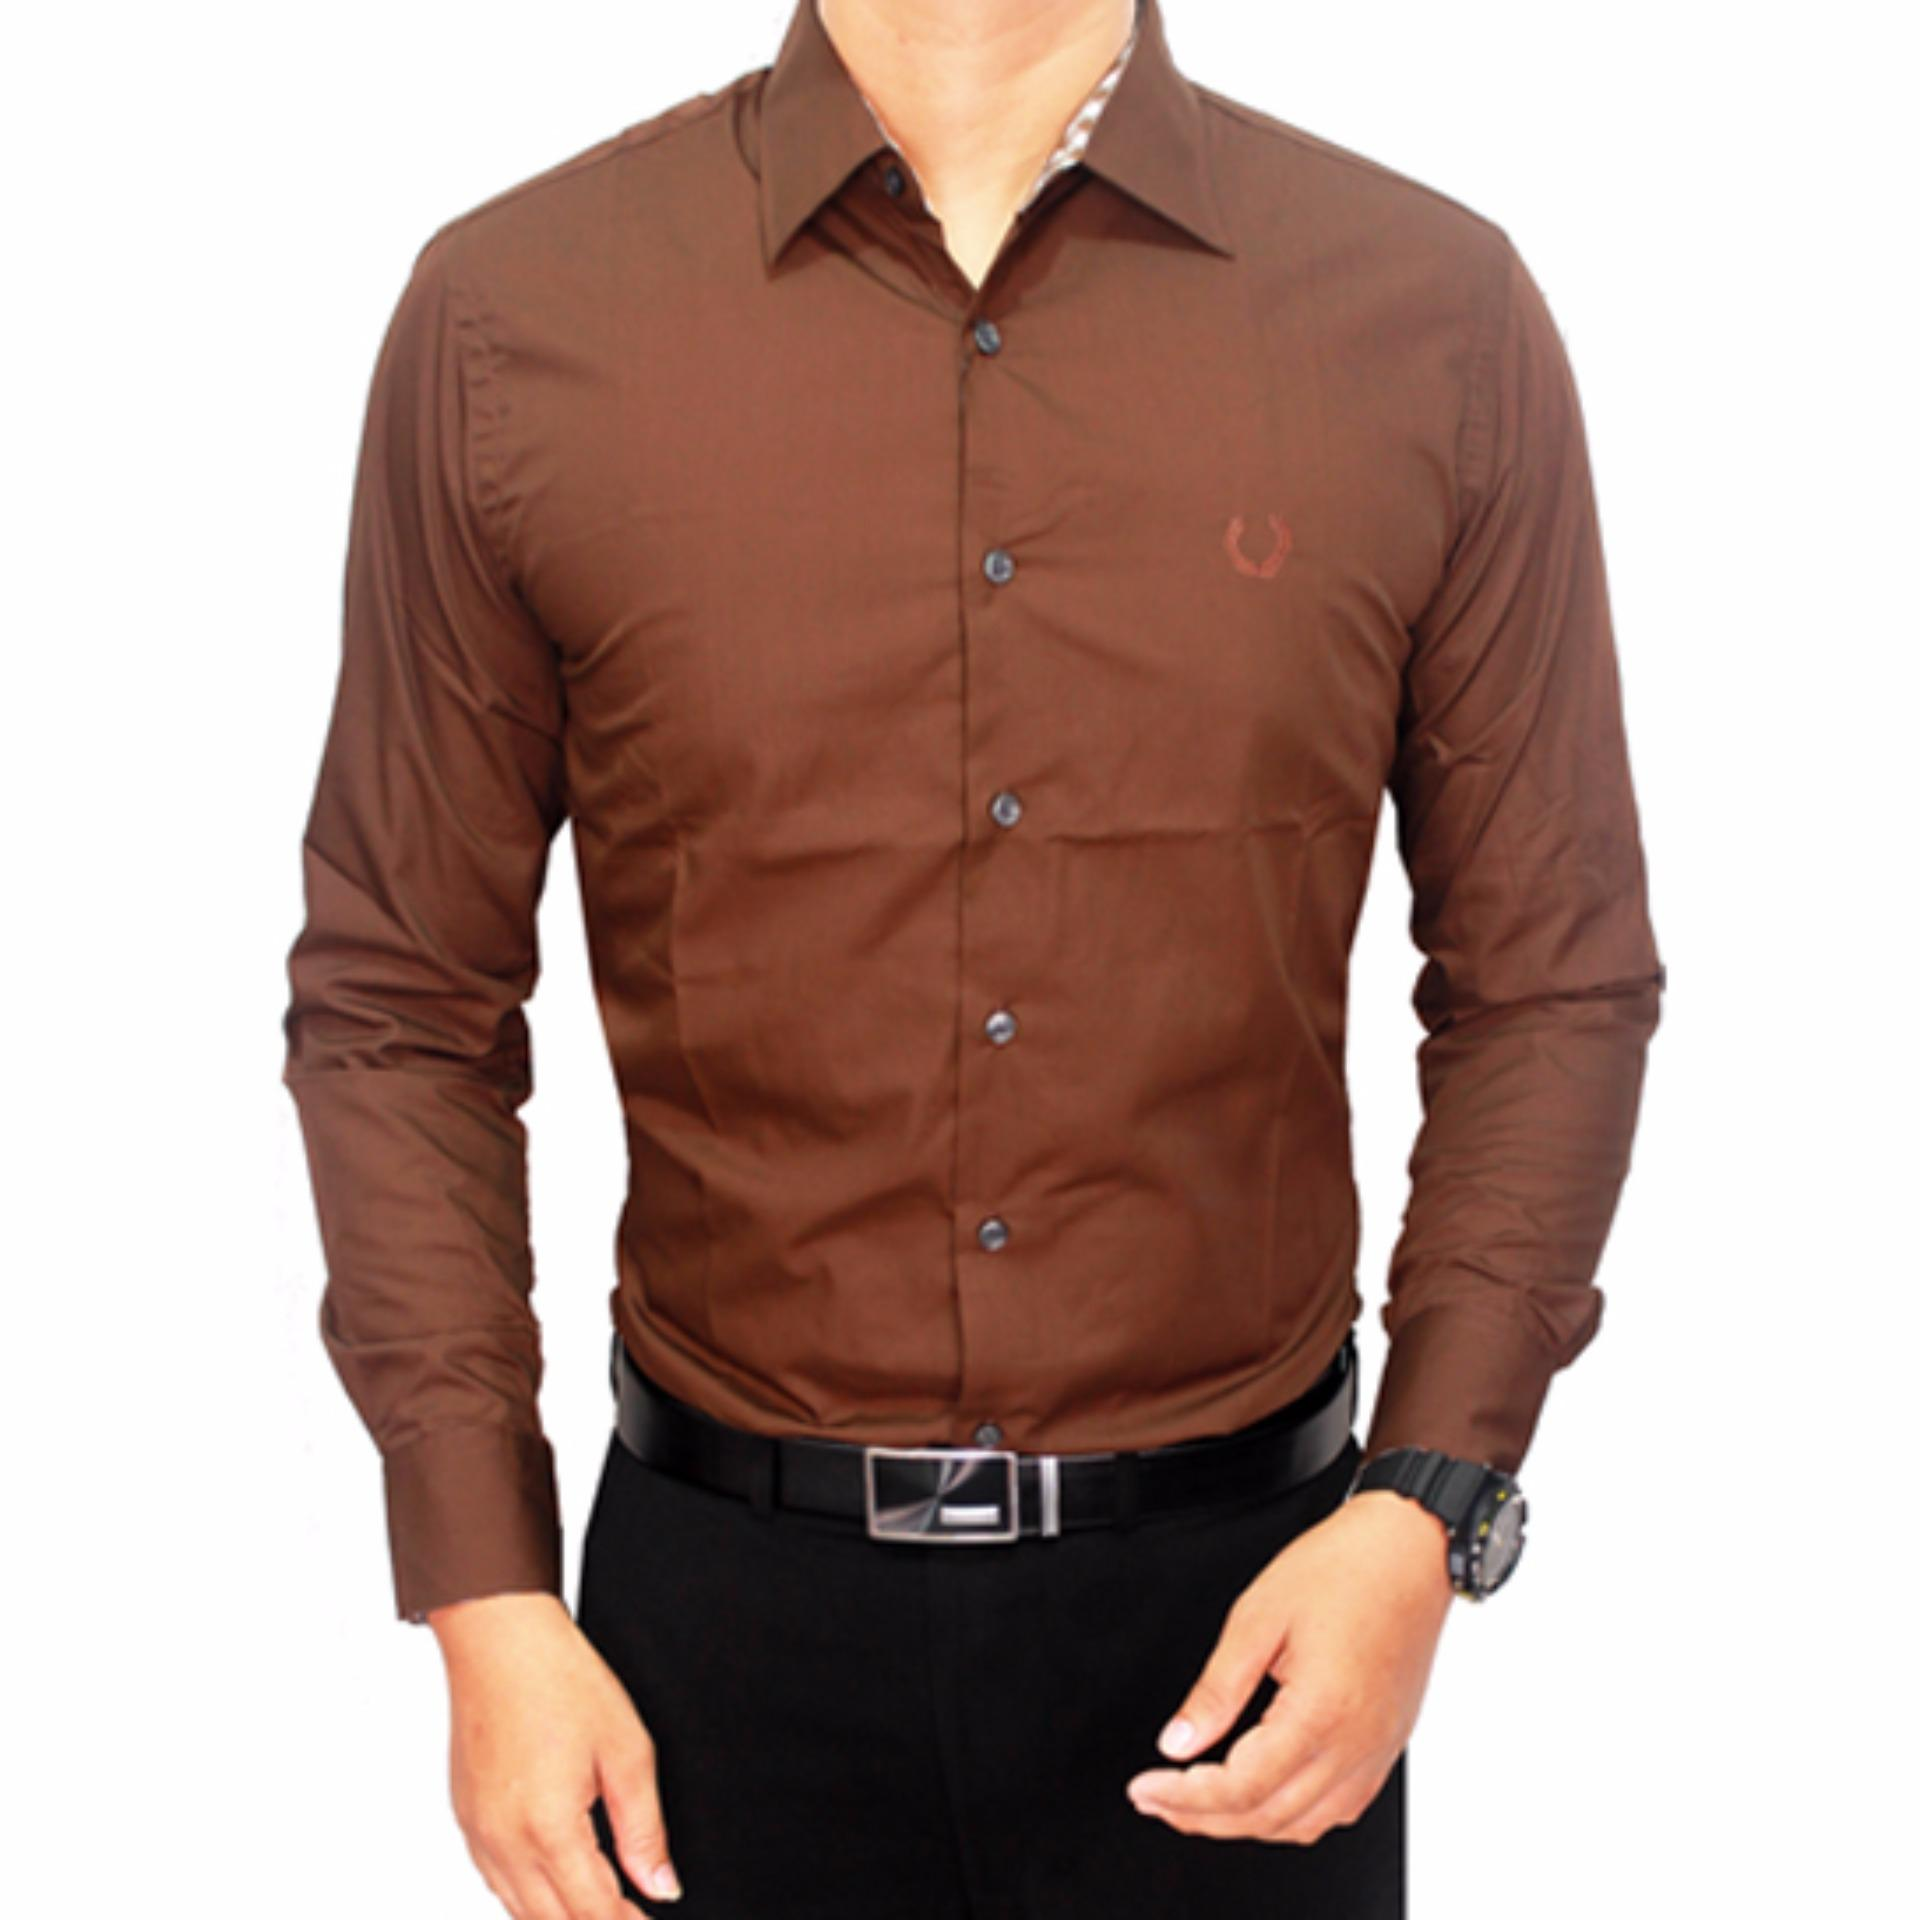 gudang fashion – formal male shirts – cokelat tua